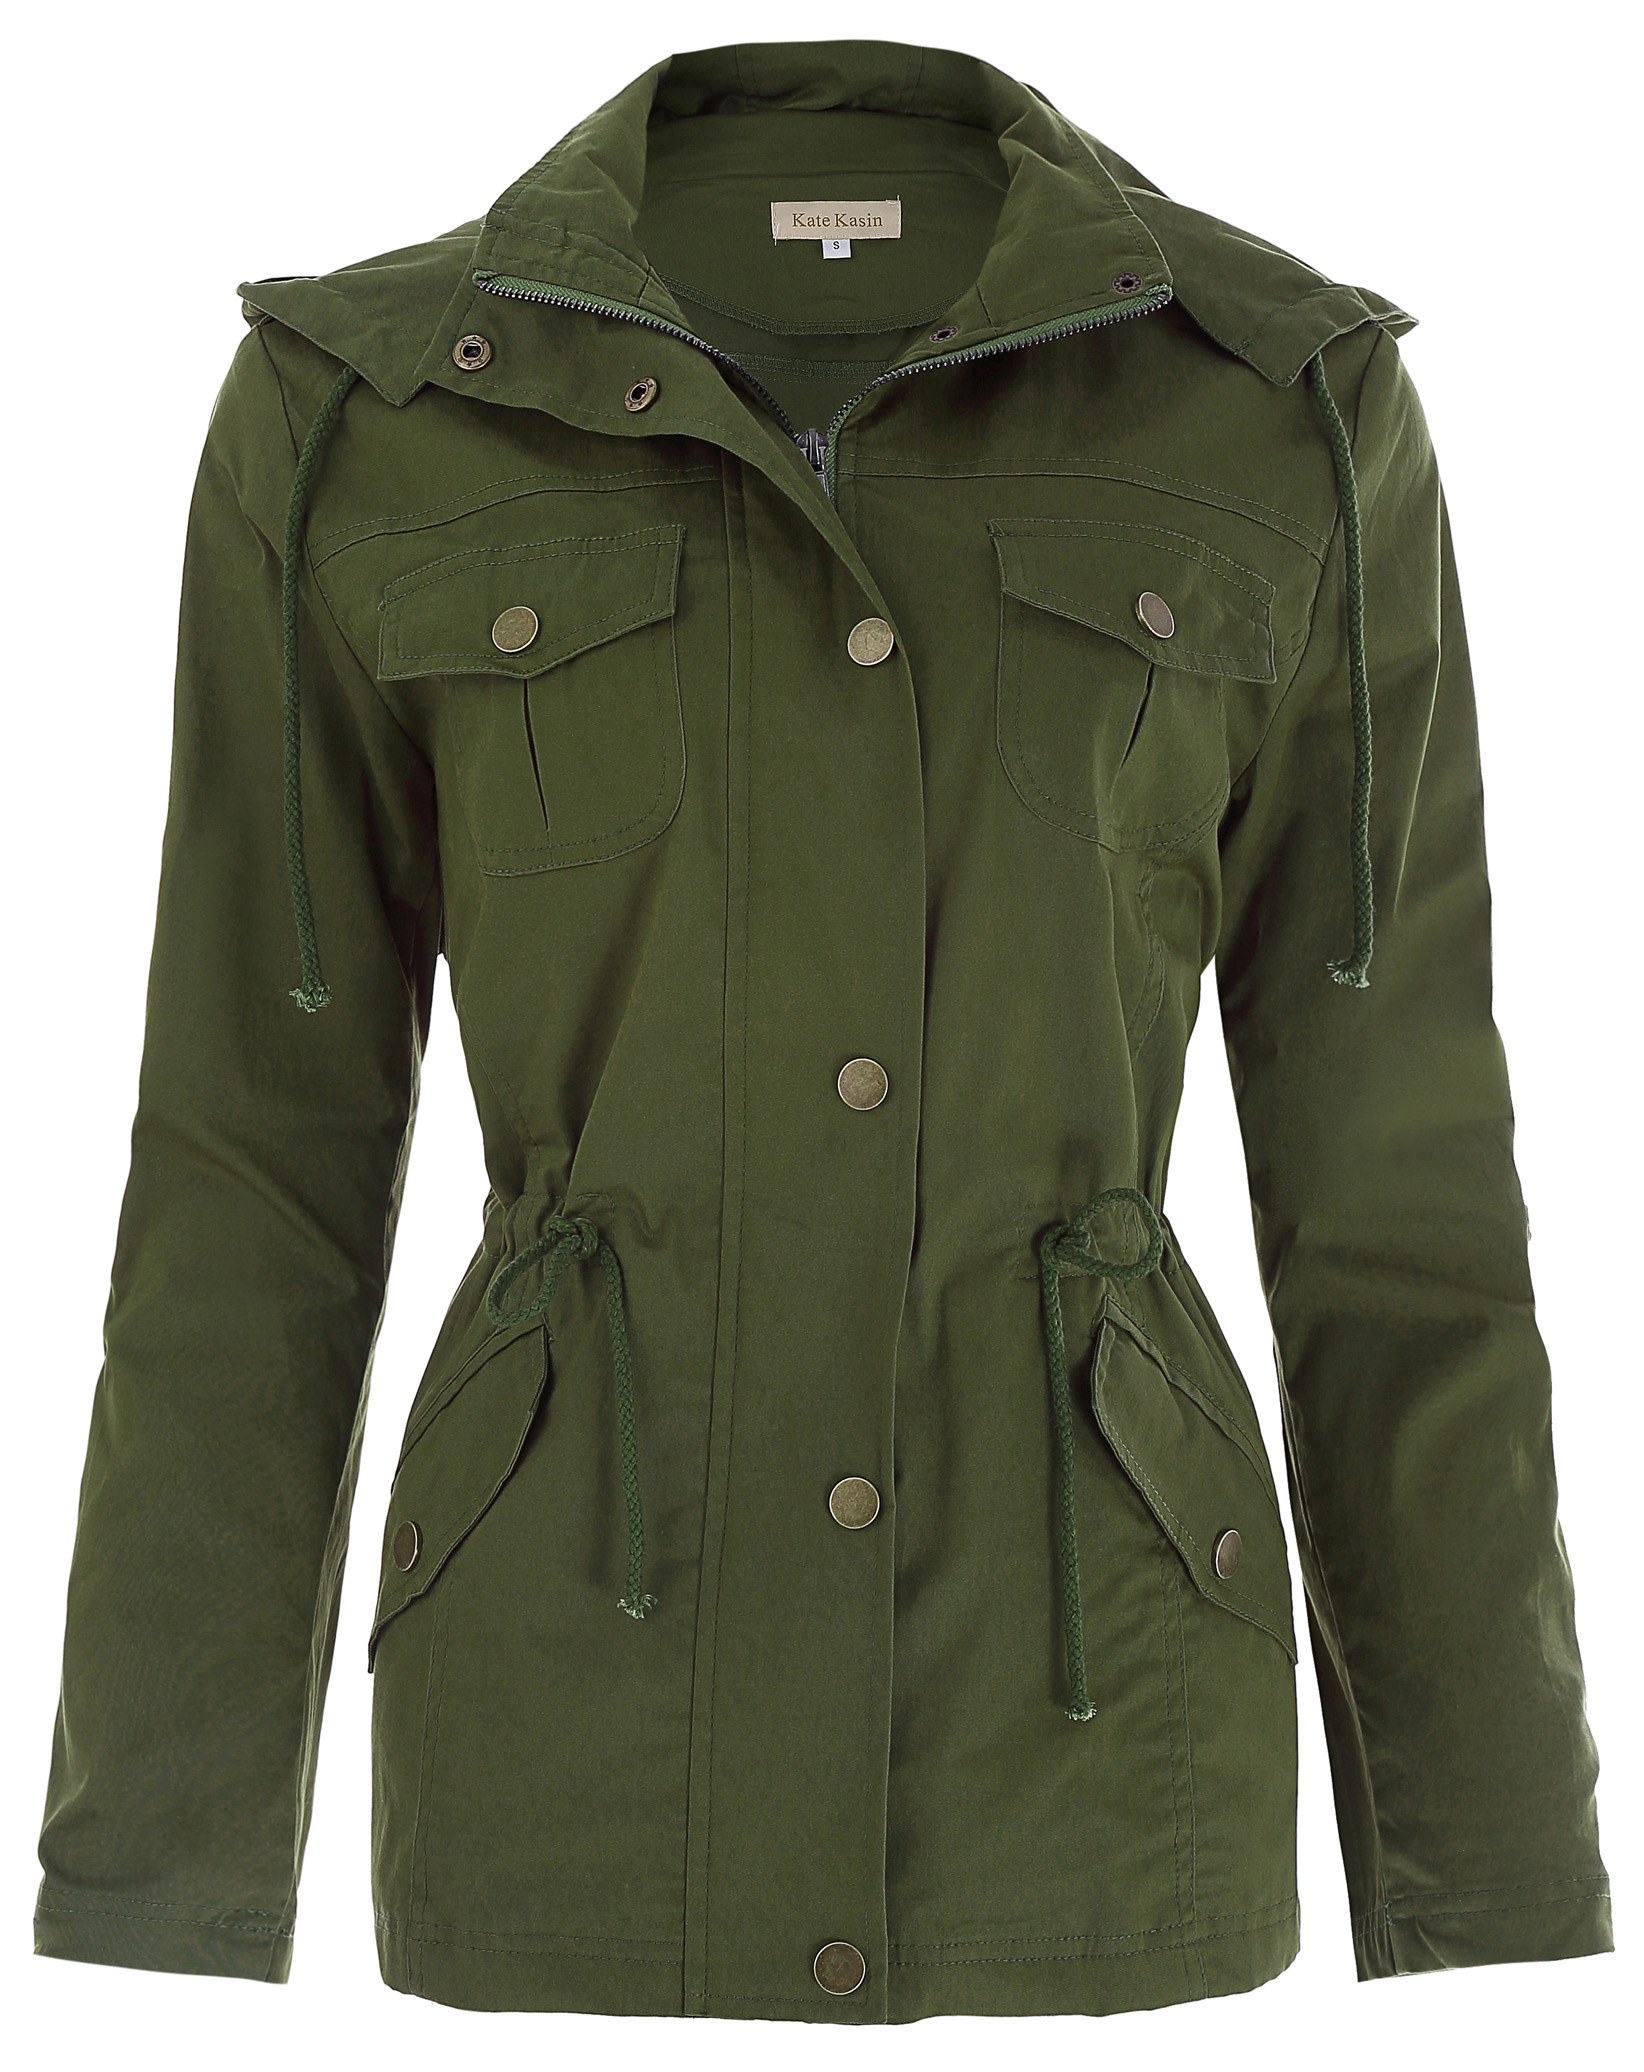 Outerwear Womens Jacket Military Safari Cotton Hooded Jacket   Coat   Tops